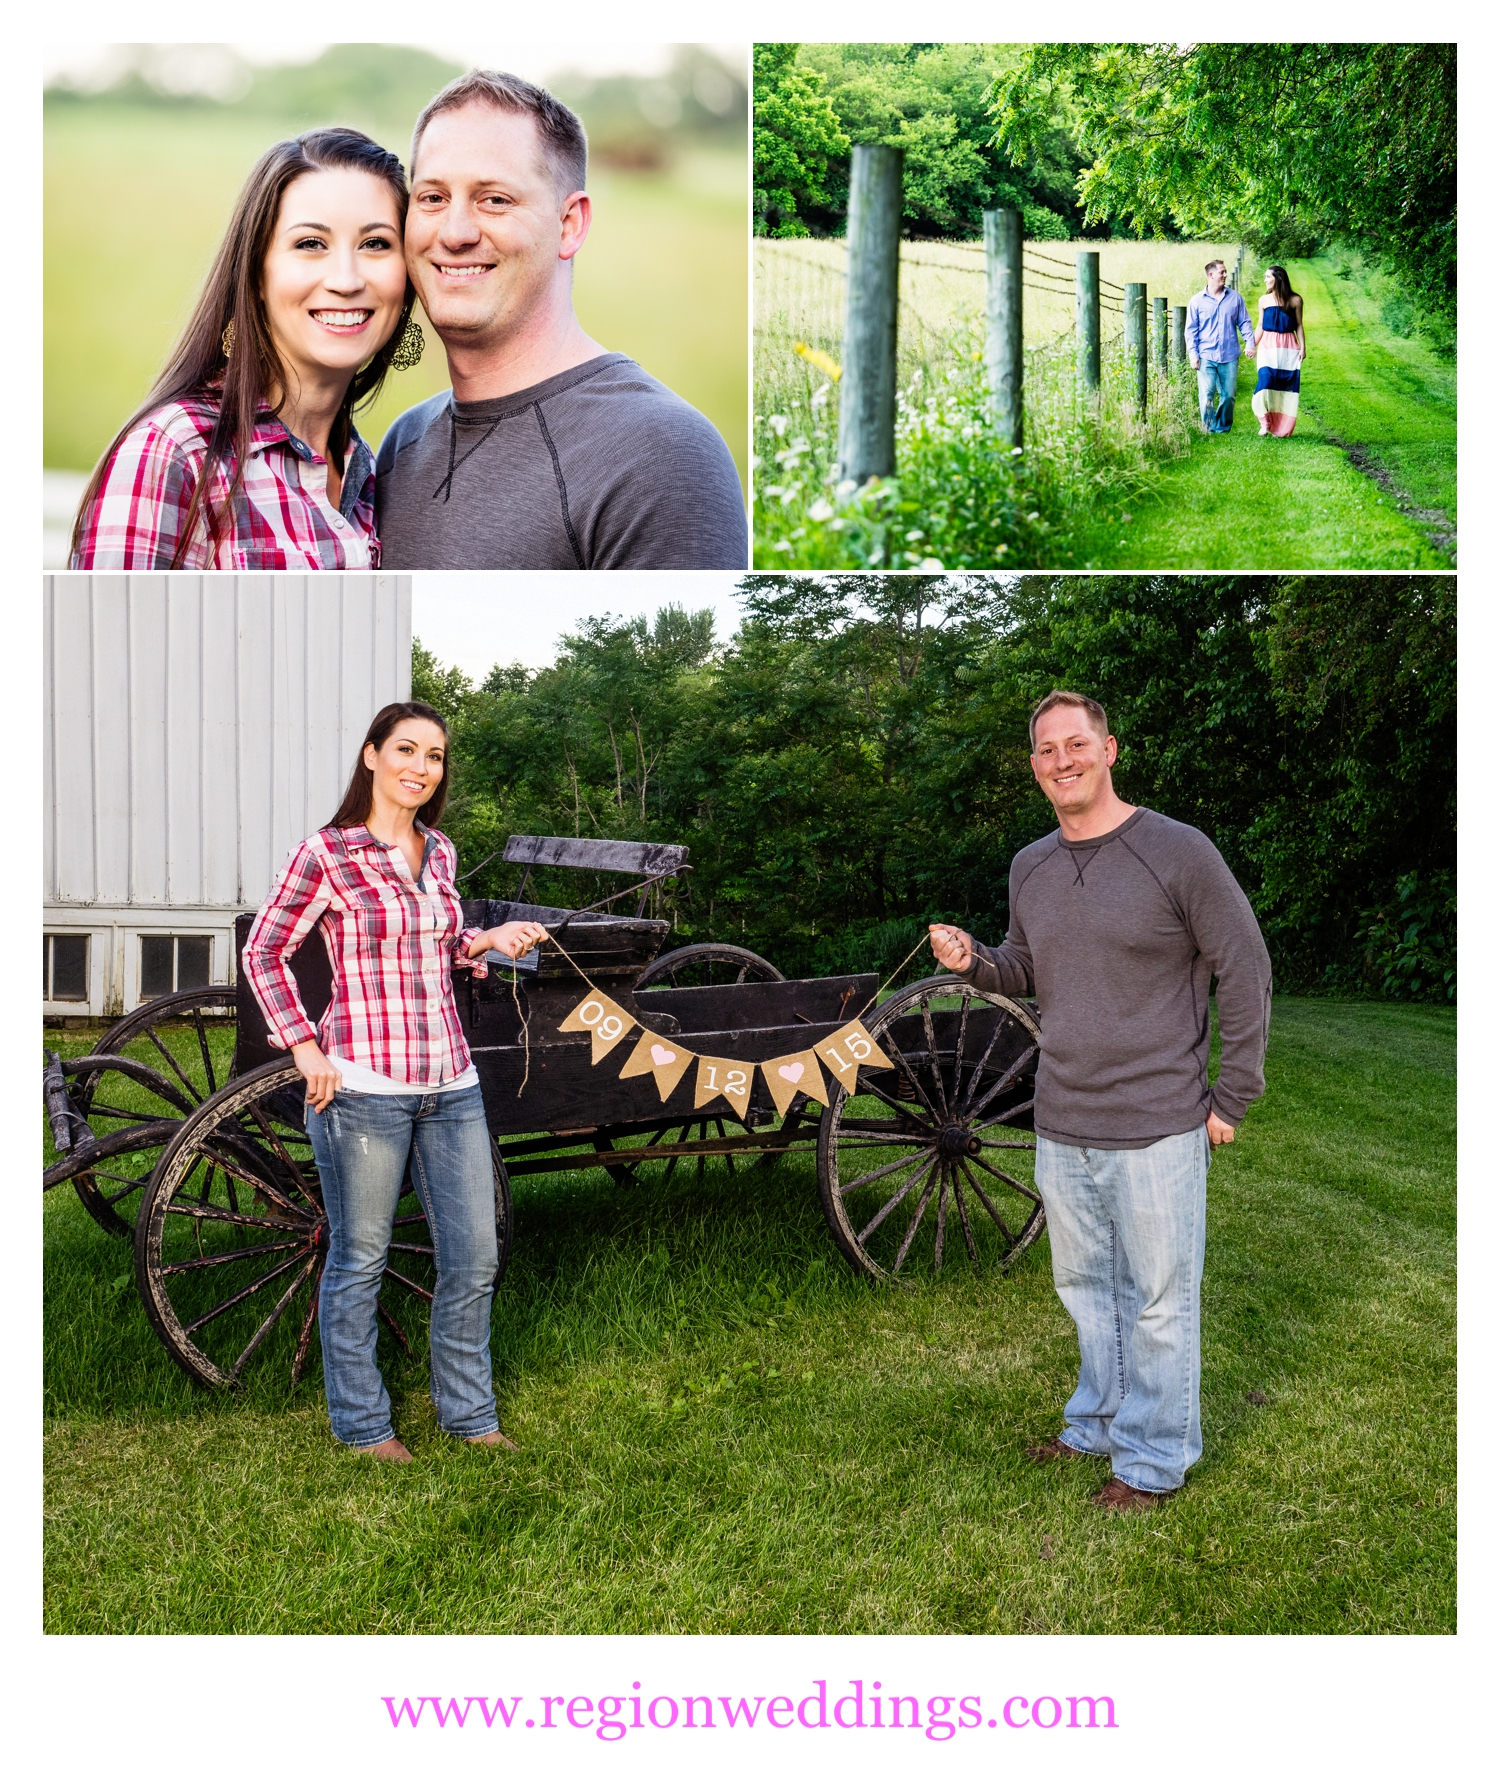 Engagement photos at Buckley Homestead in Lowell, Indiana.